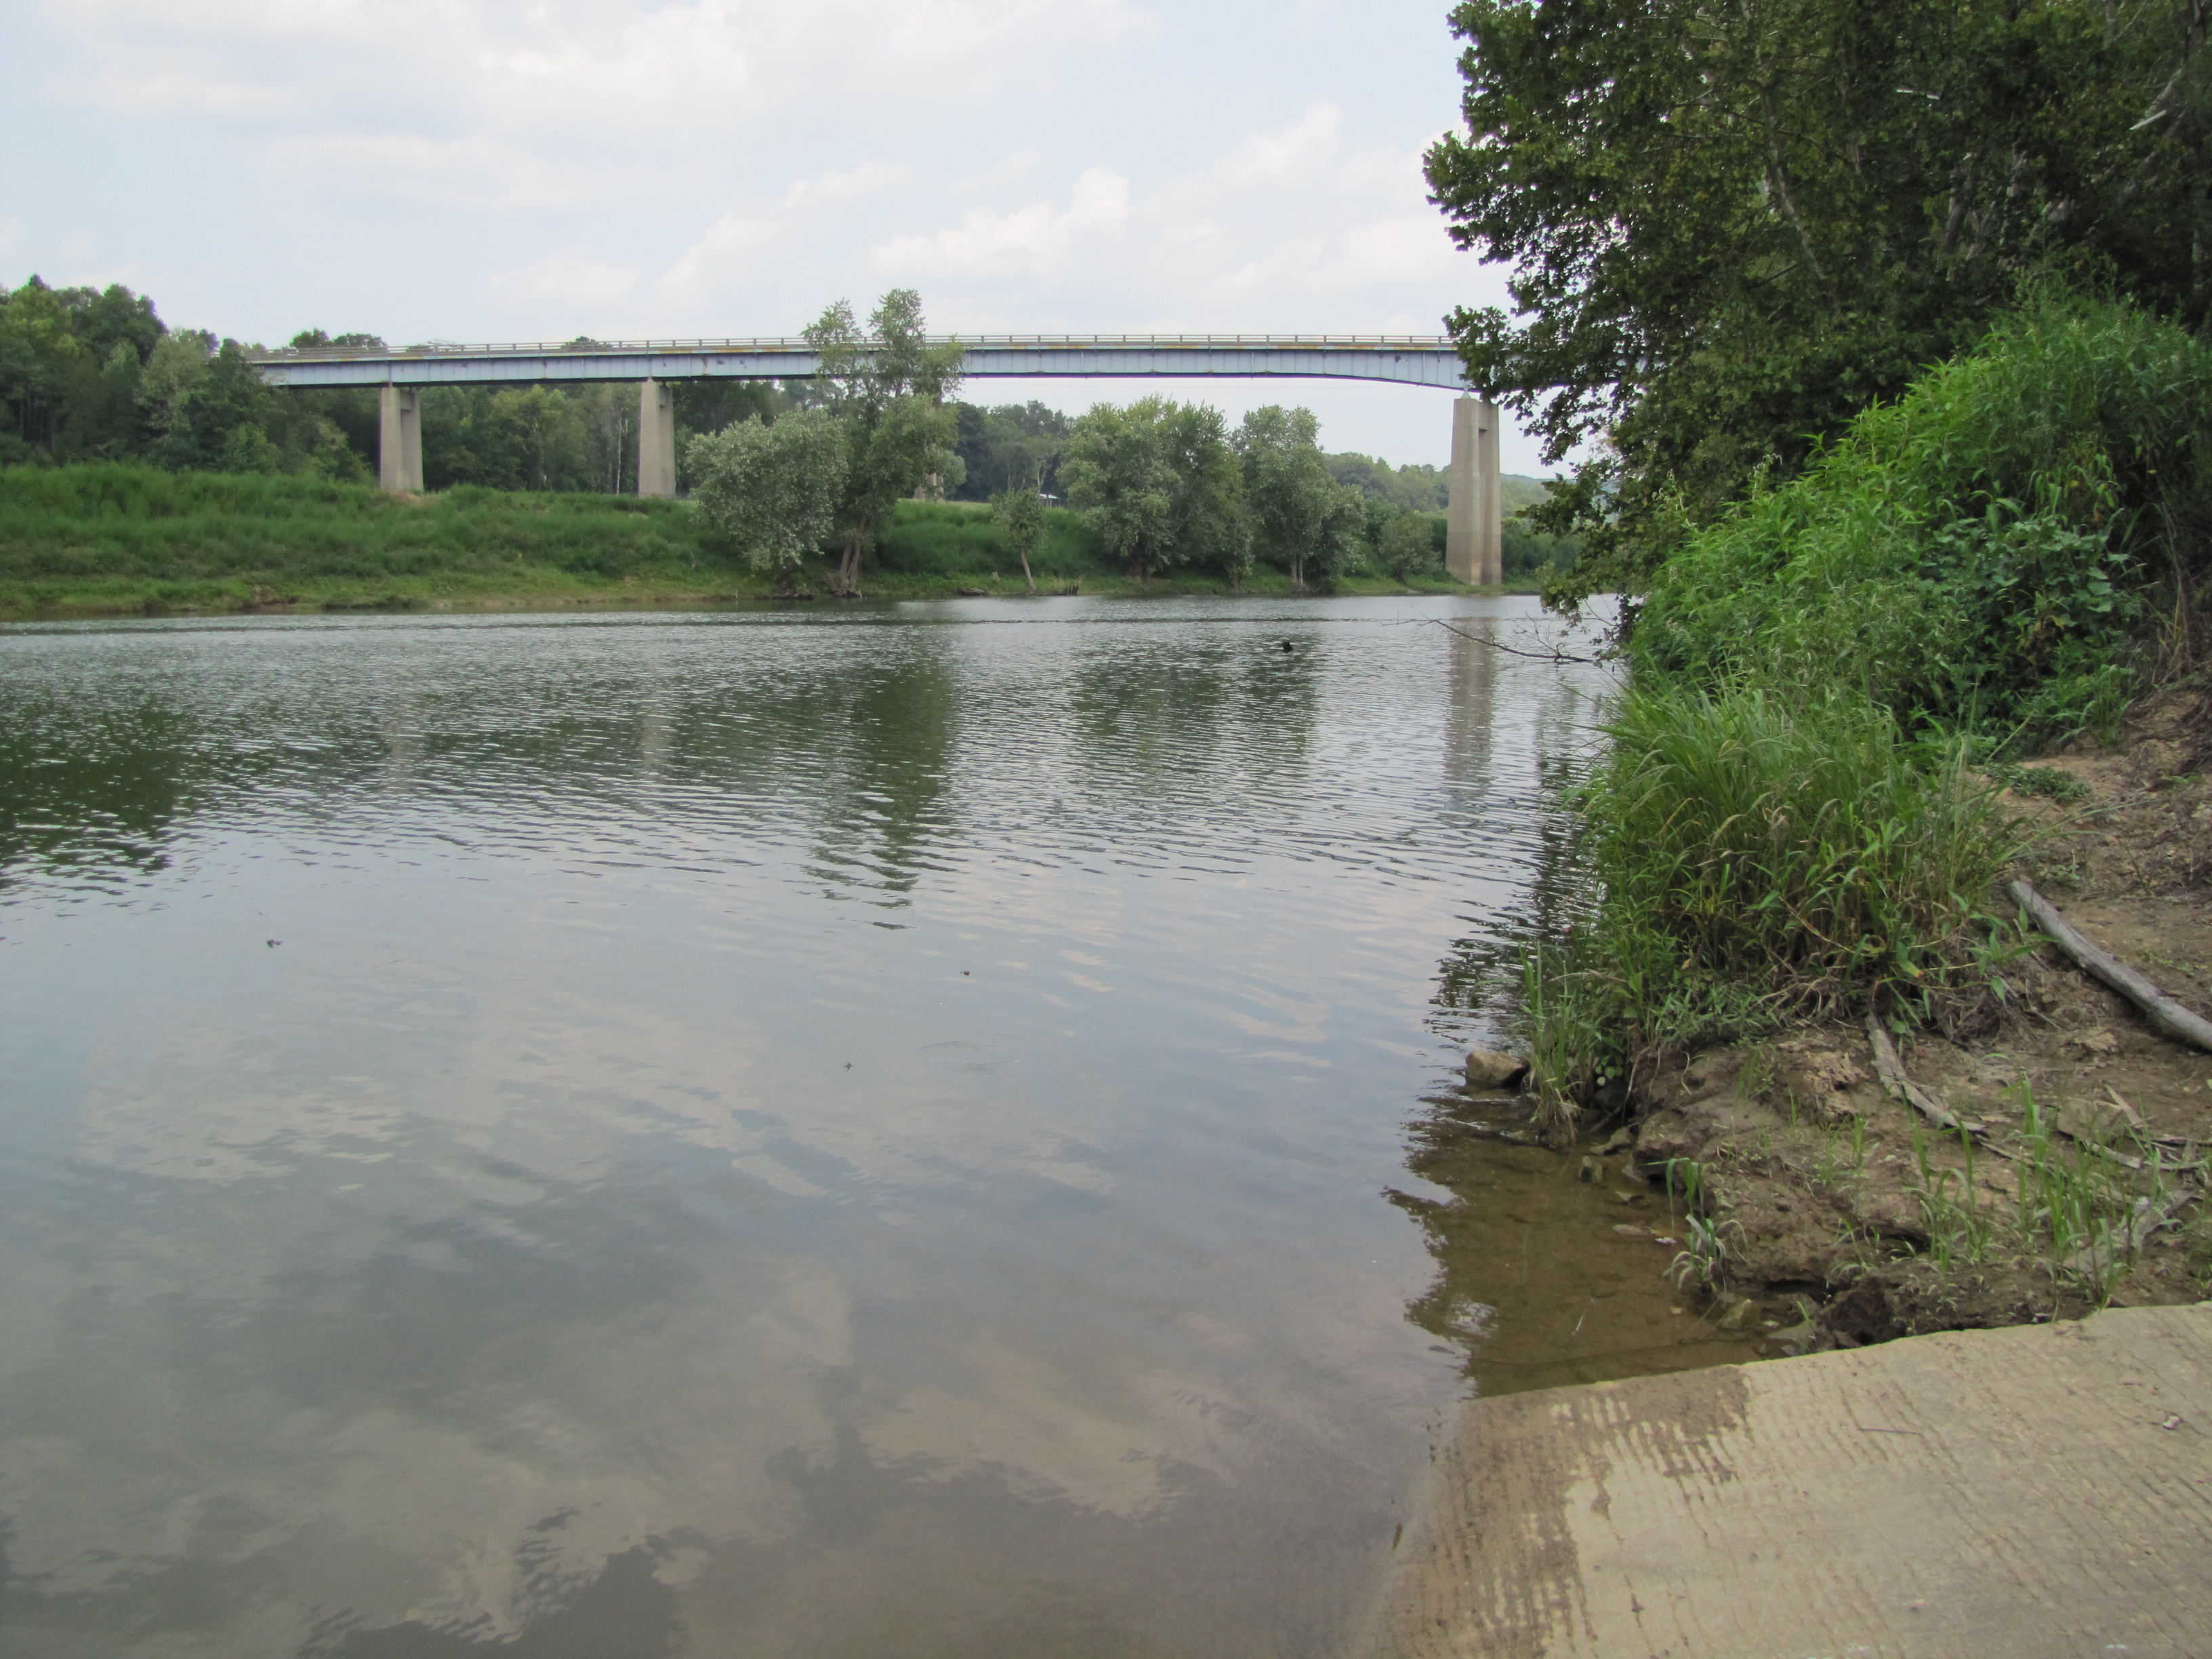 Looking upstream from the Brownsville City Boat Ramp at HWY 259 Bridge.